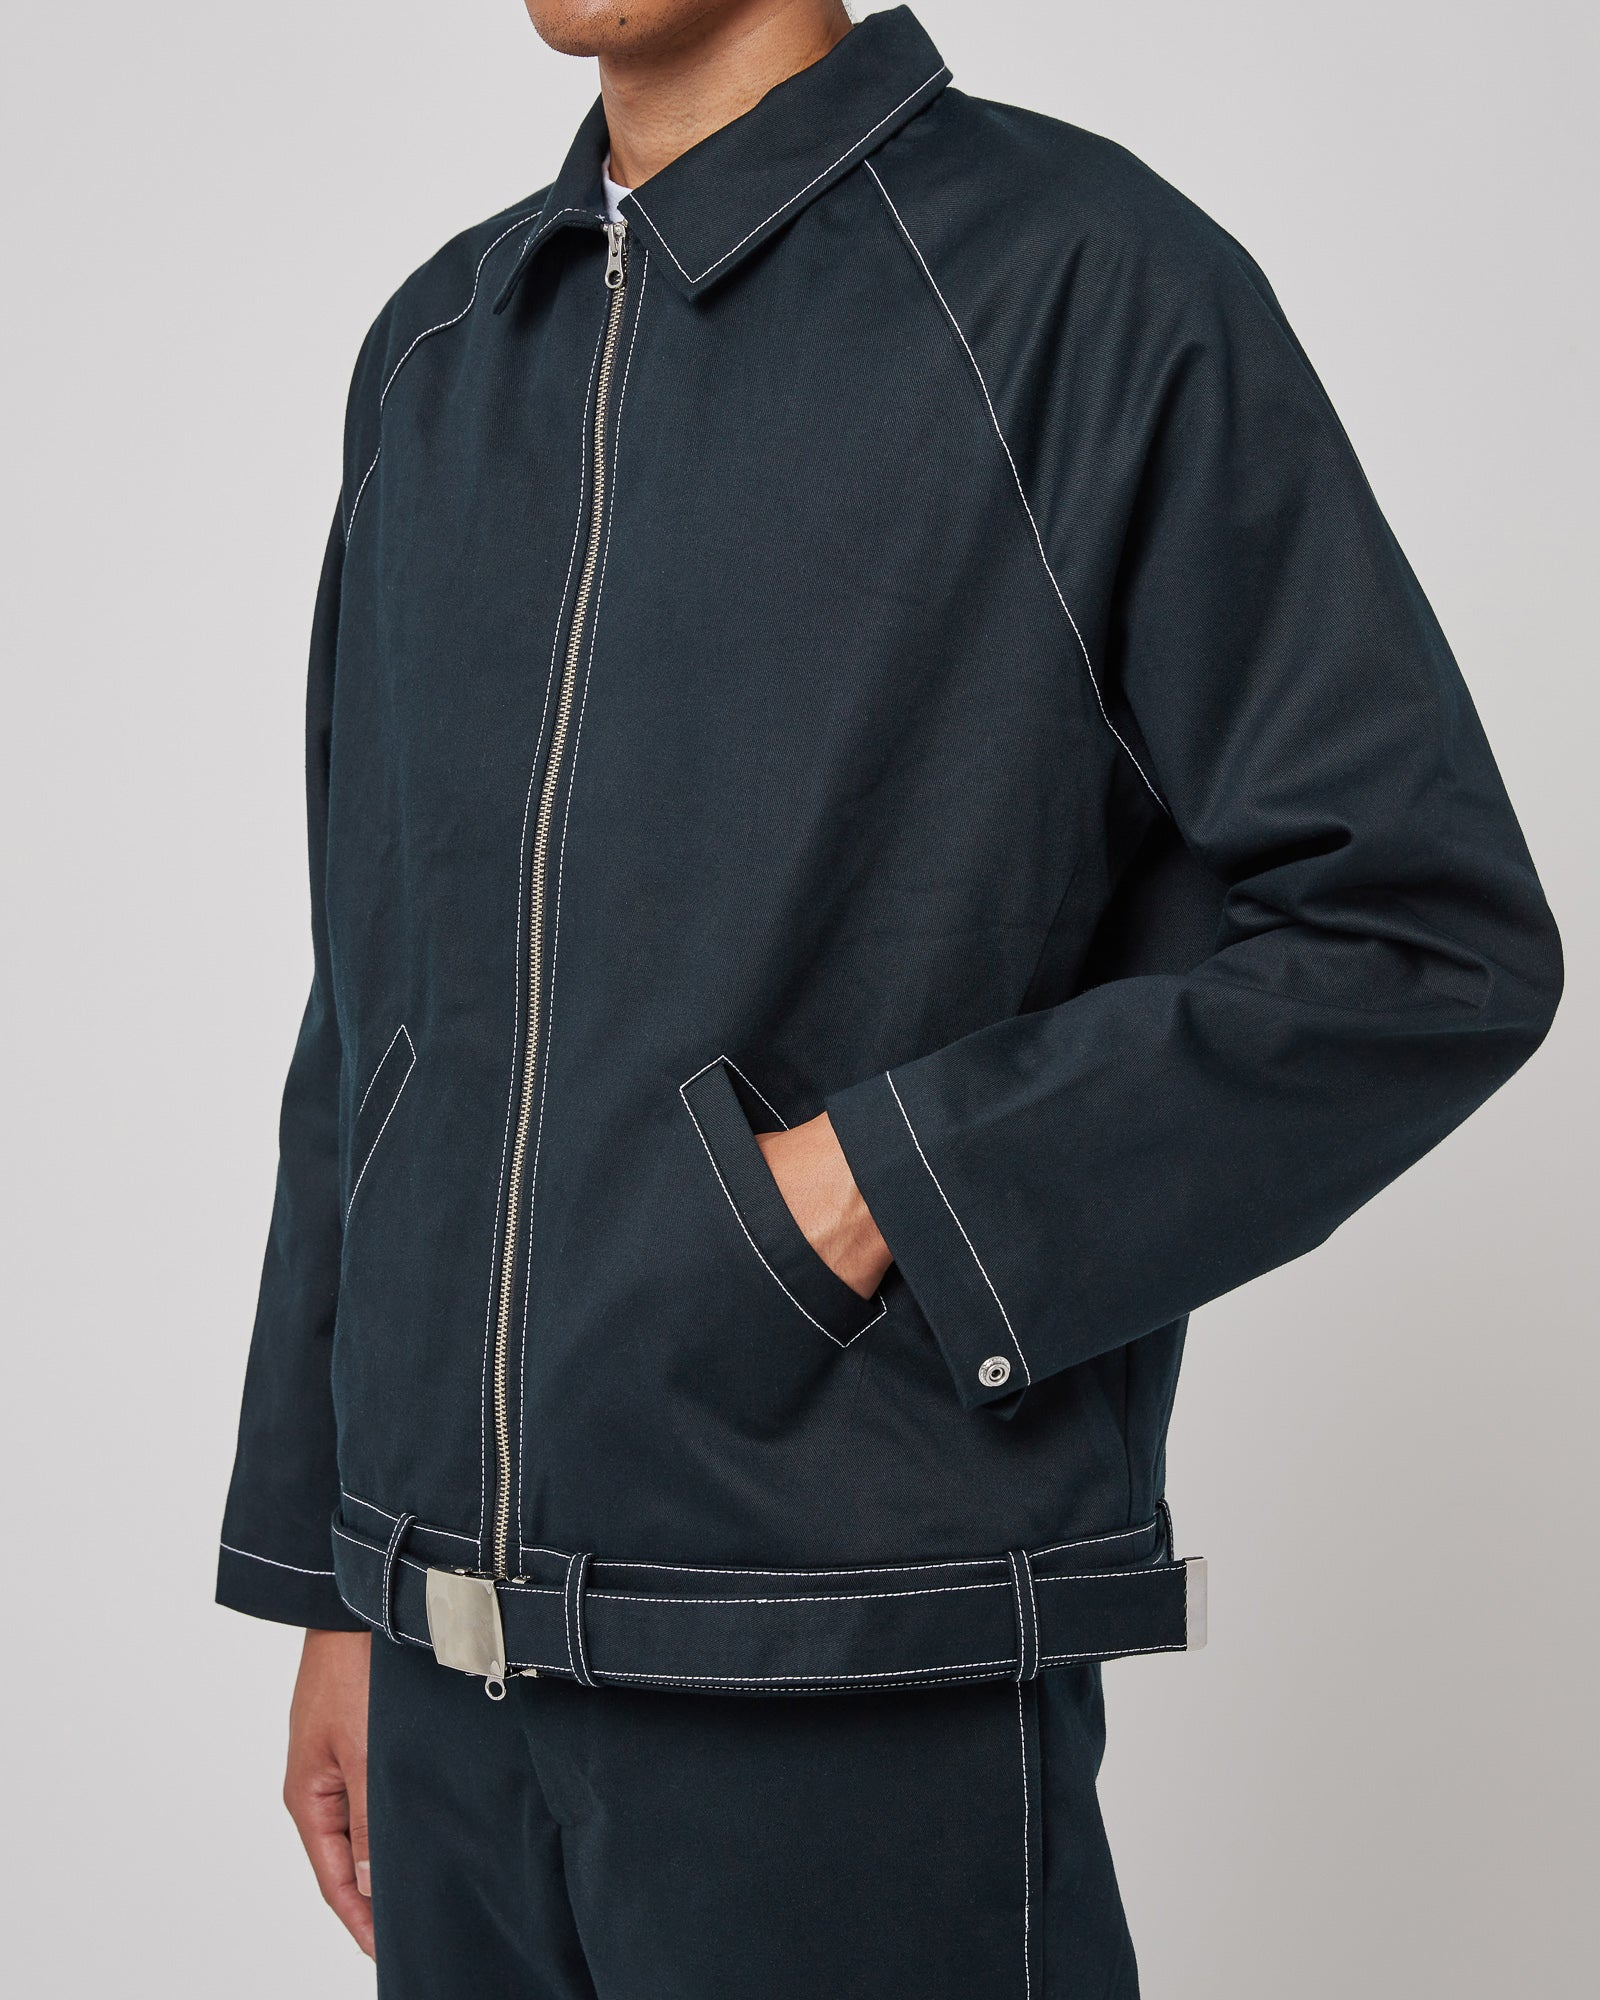 Full Service Sunday Coach Jacket in Black